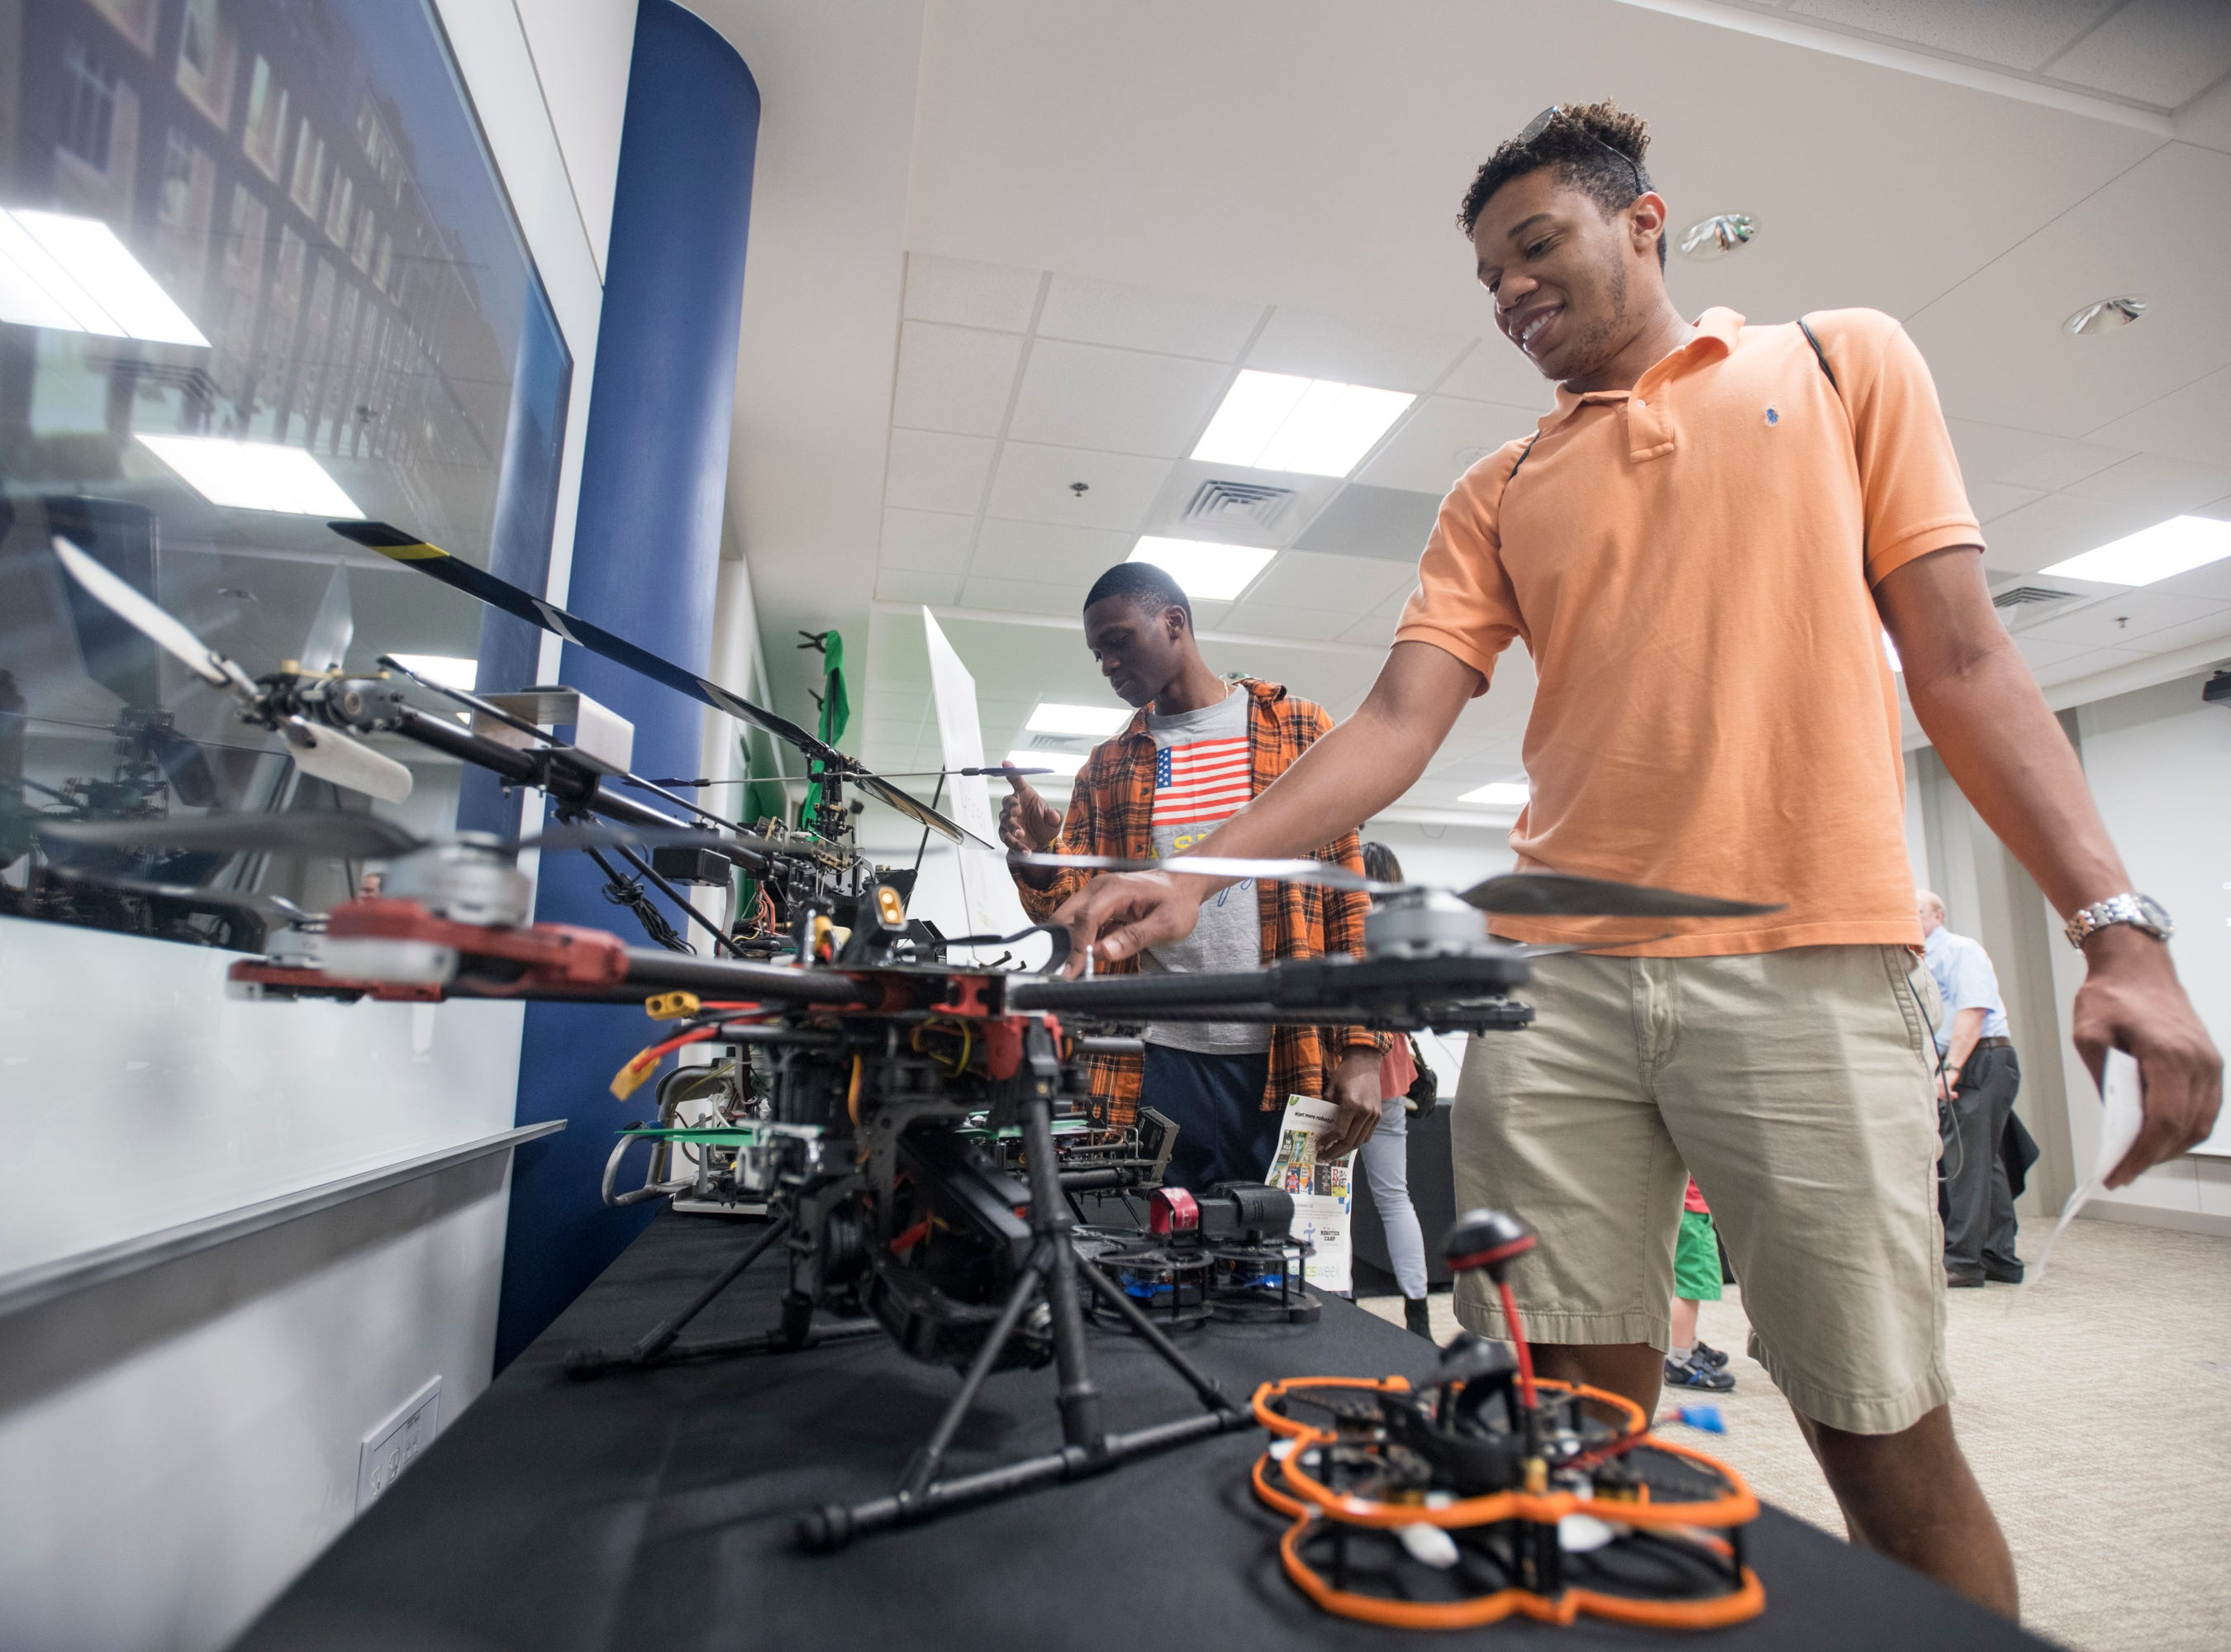 FSU engineering students Newton St. Louis, left, and Tarick Walcott check out drones on display during the IHMC Open House in downtown Pensacola on Friday, April 12, 2019.